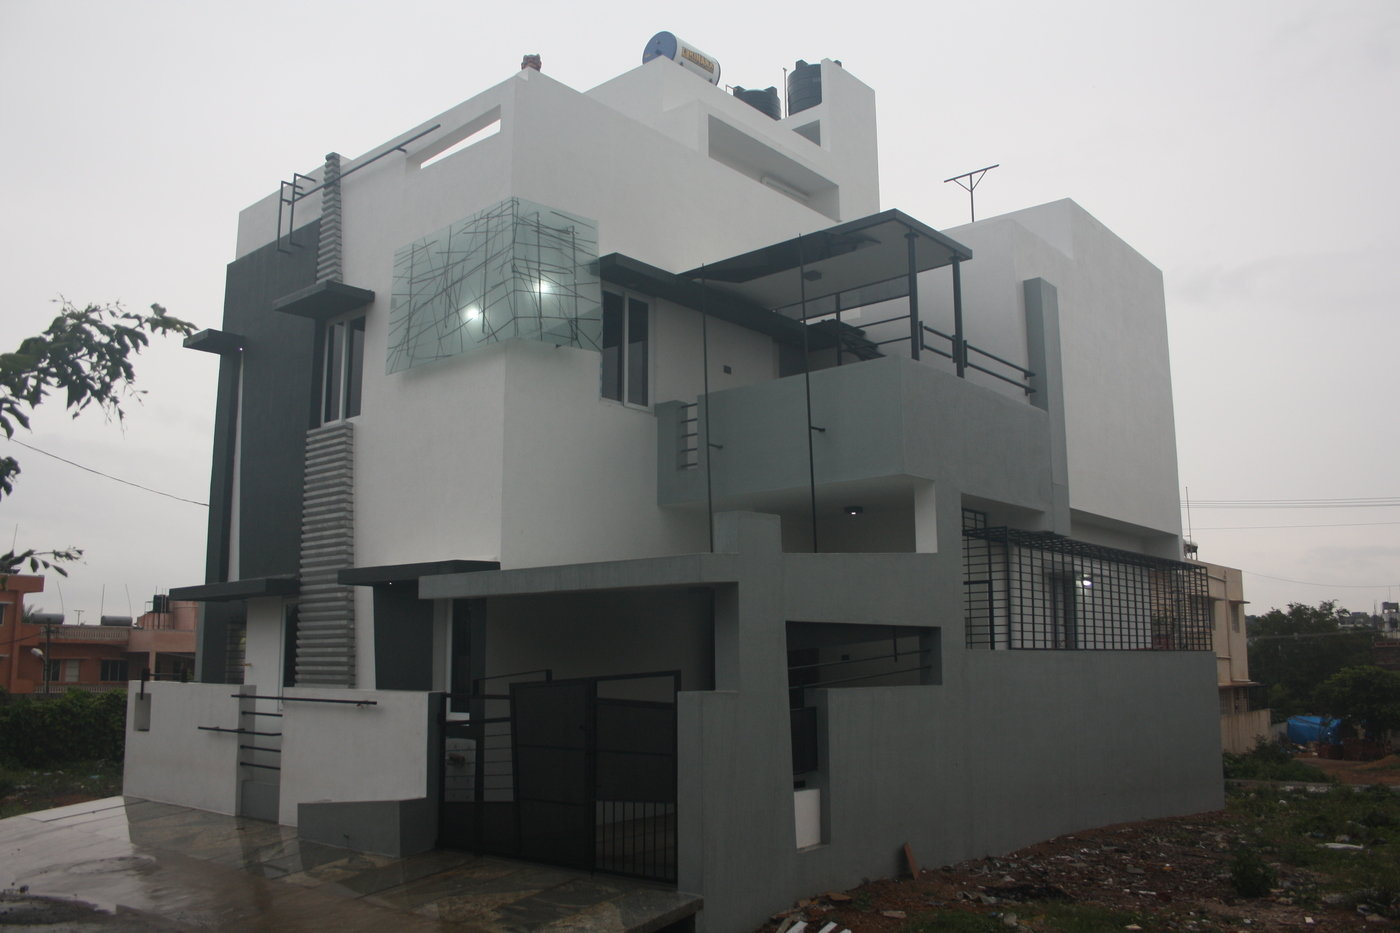 Front Elevation Designs For Houses In Bangalore : House designs bangalore front elevation by ashwin